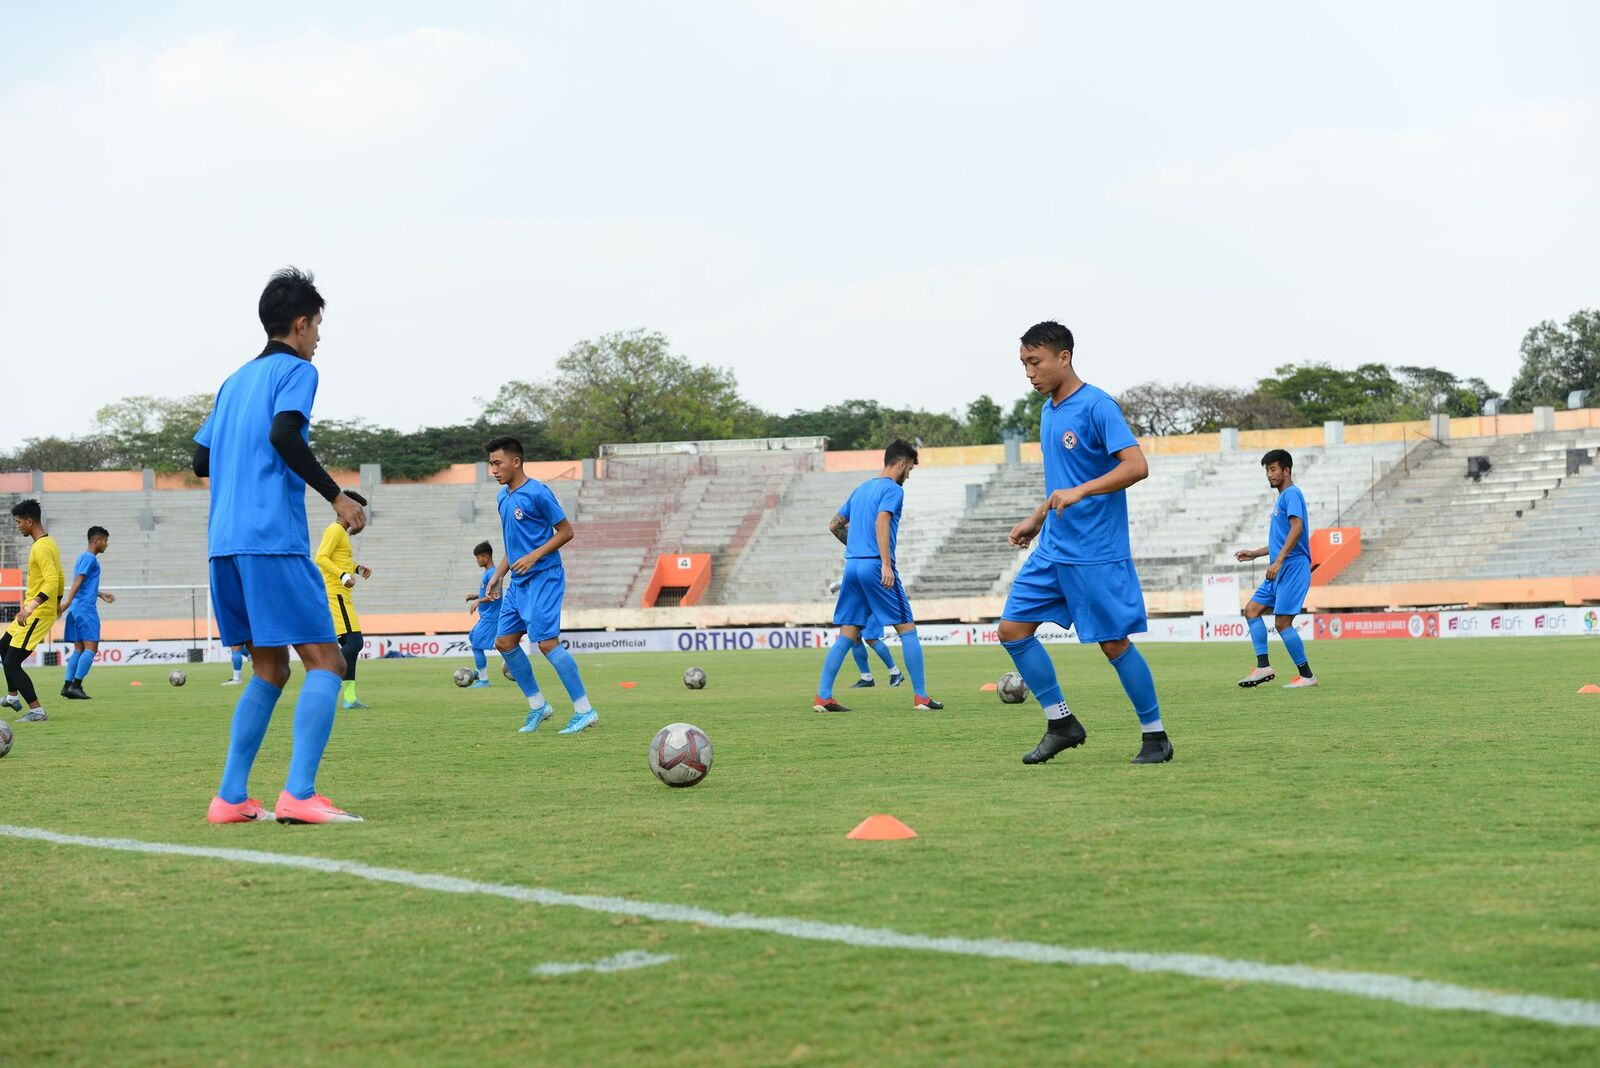 I-League: Preview: Chennai, Aizawl face-off in a bid to move up the league table